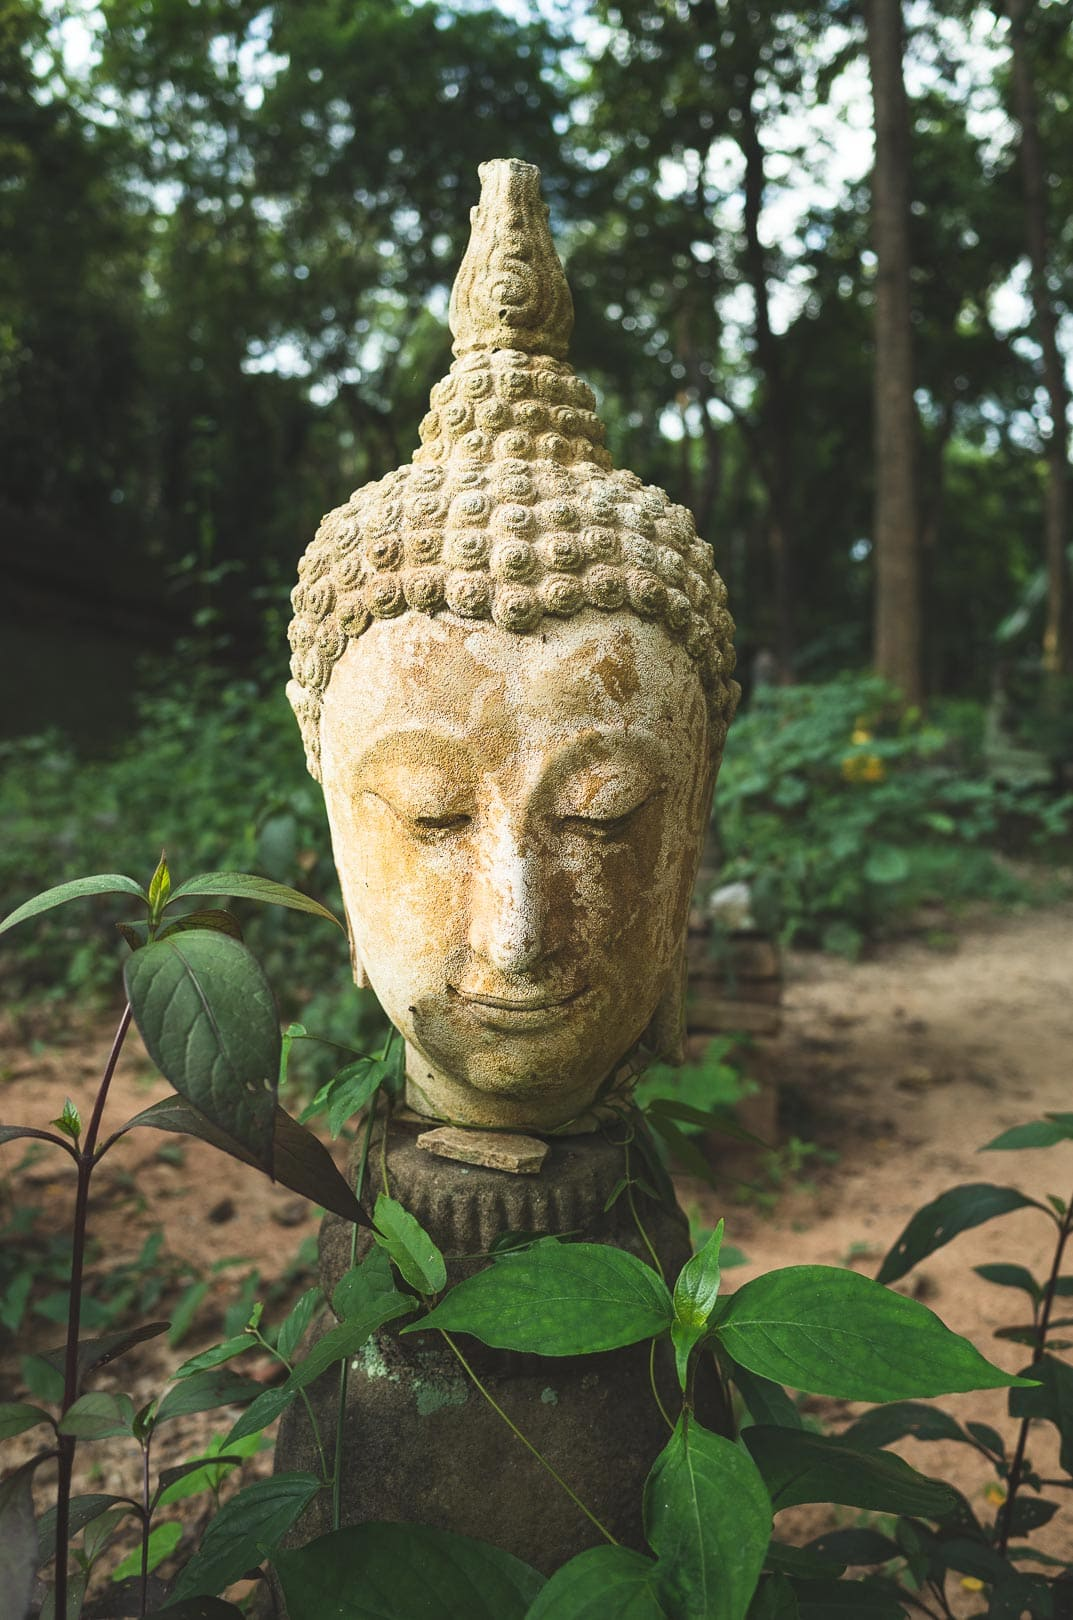 A white Buddha head sits in a garden at Wat Umong temple in Chiang Mai, Thailand